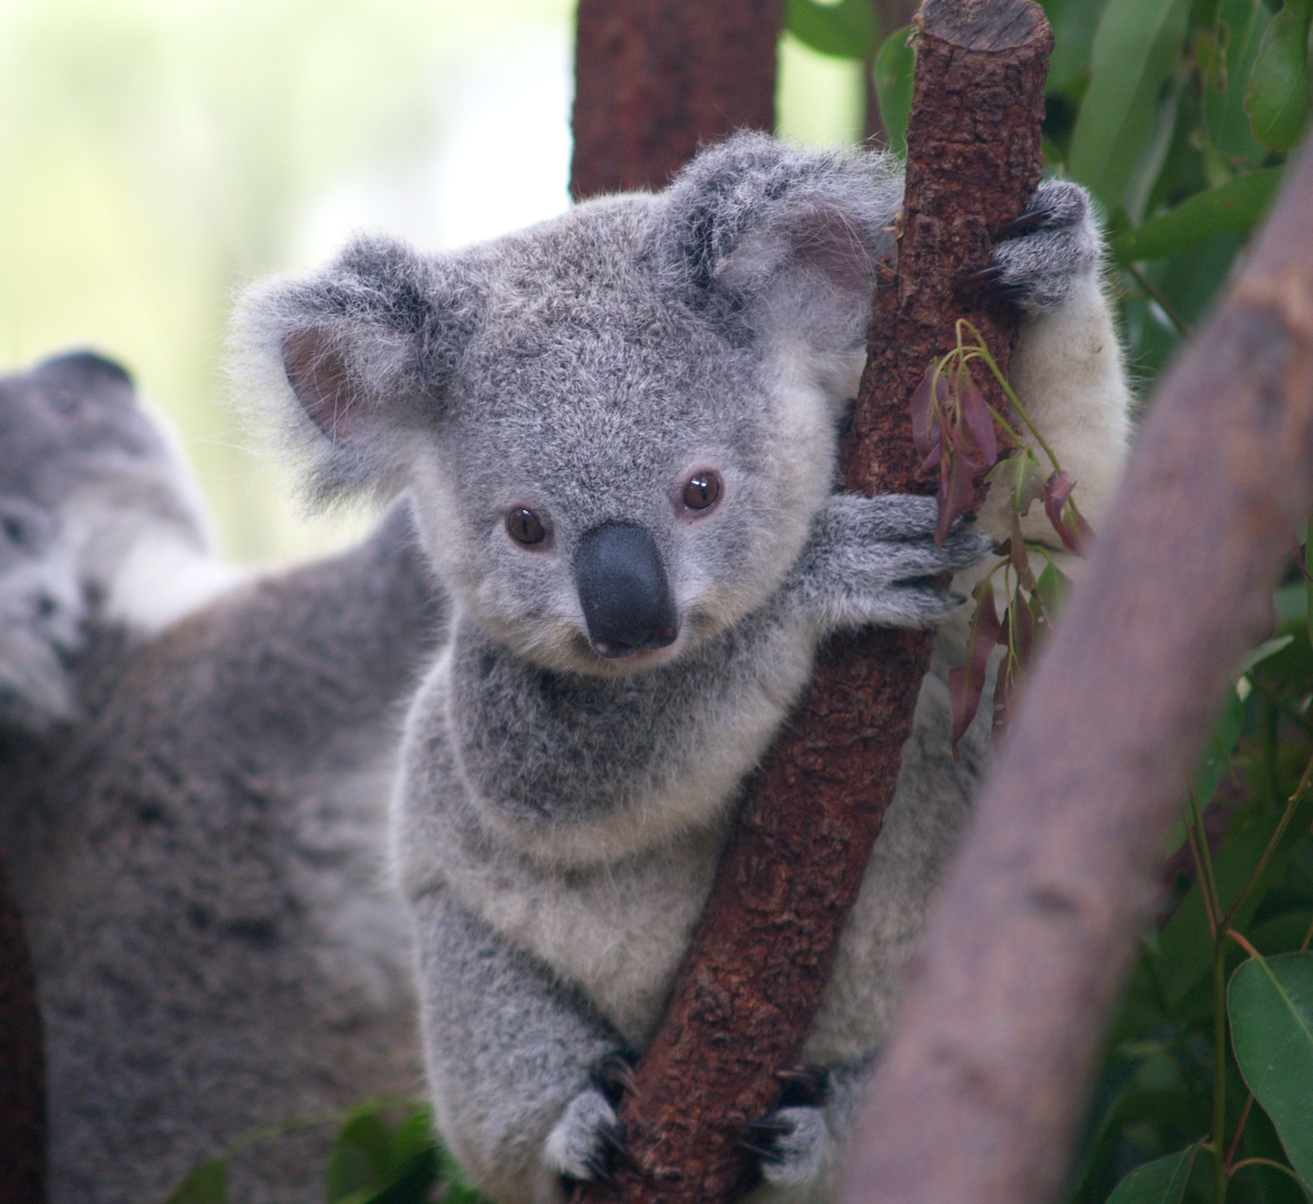 Adorable Baby Koala Mistakes Pet Dog For Its Mother